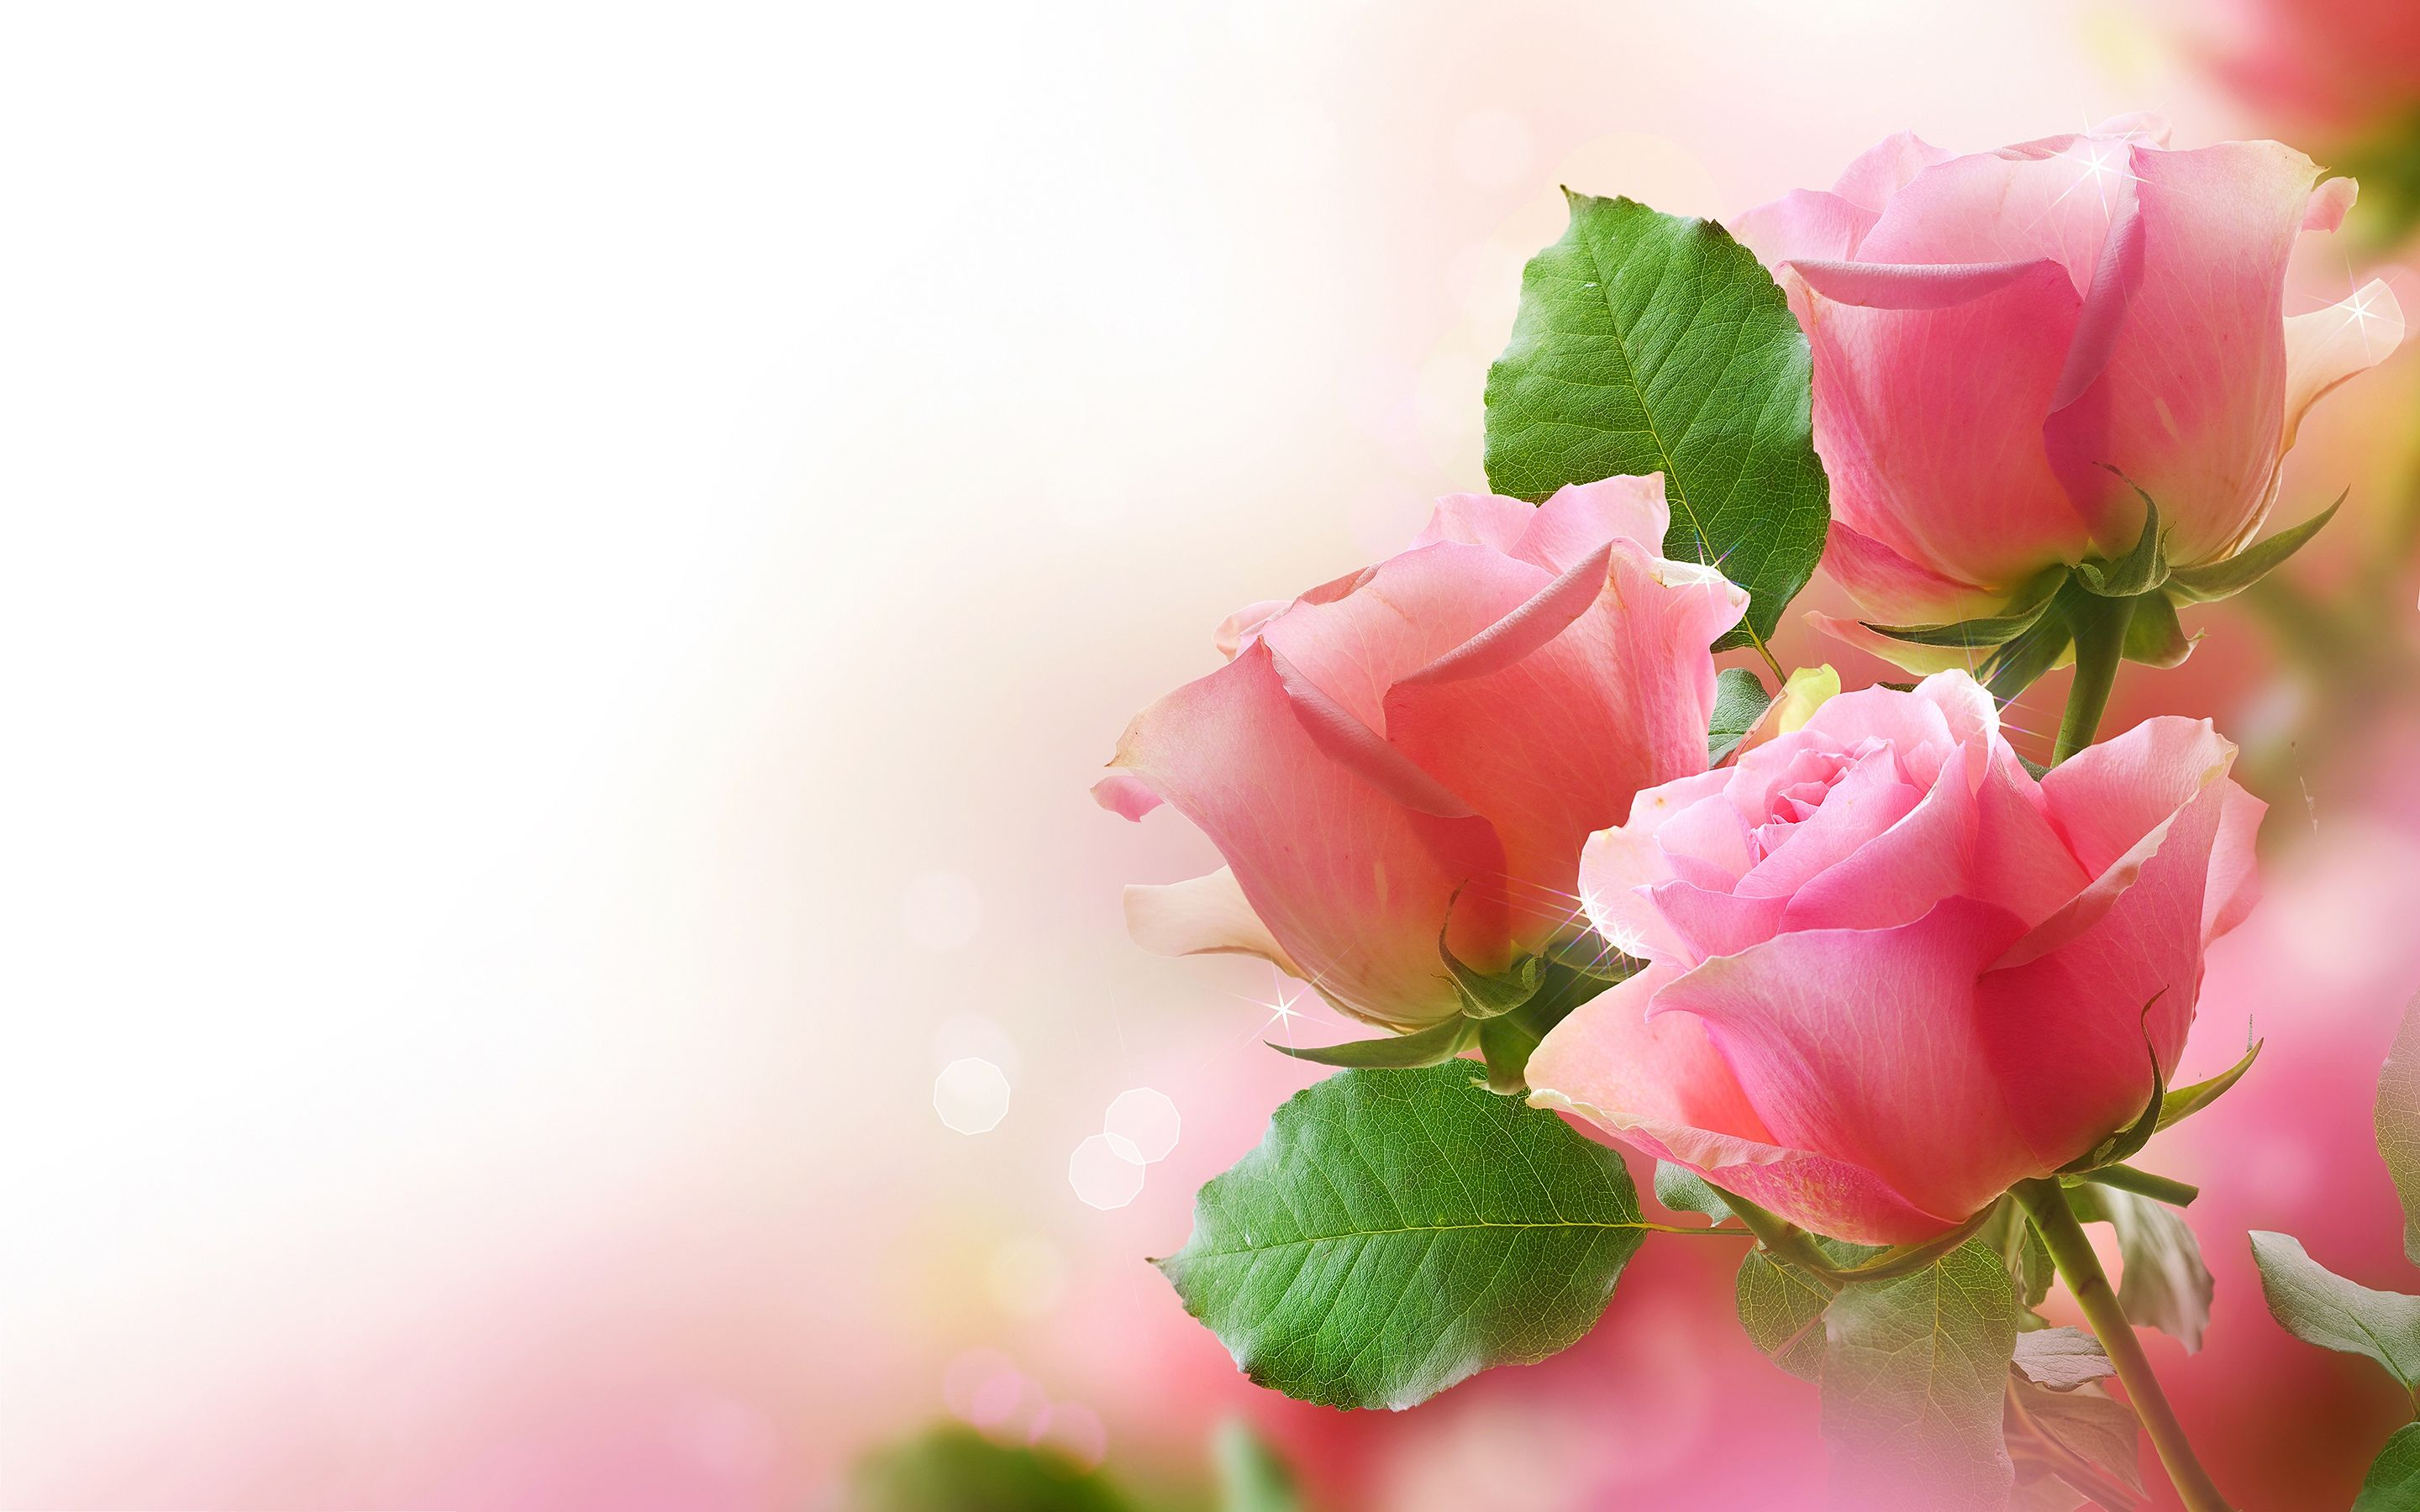 Pictures Of Flowers Roses And Wallpapers Download Roses